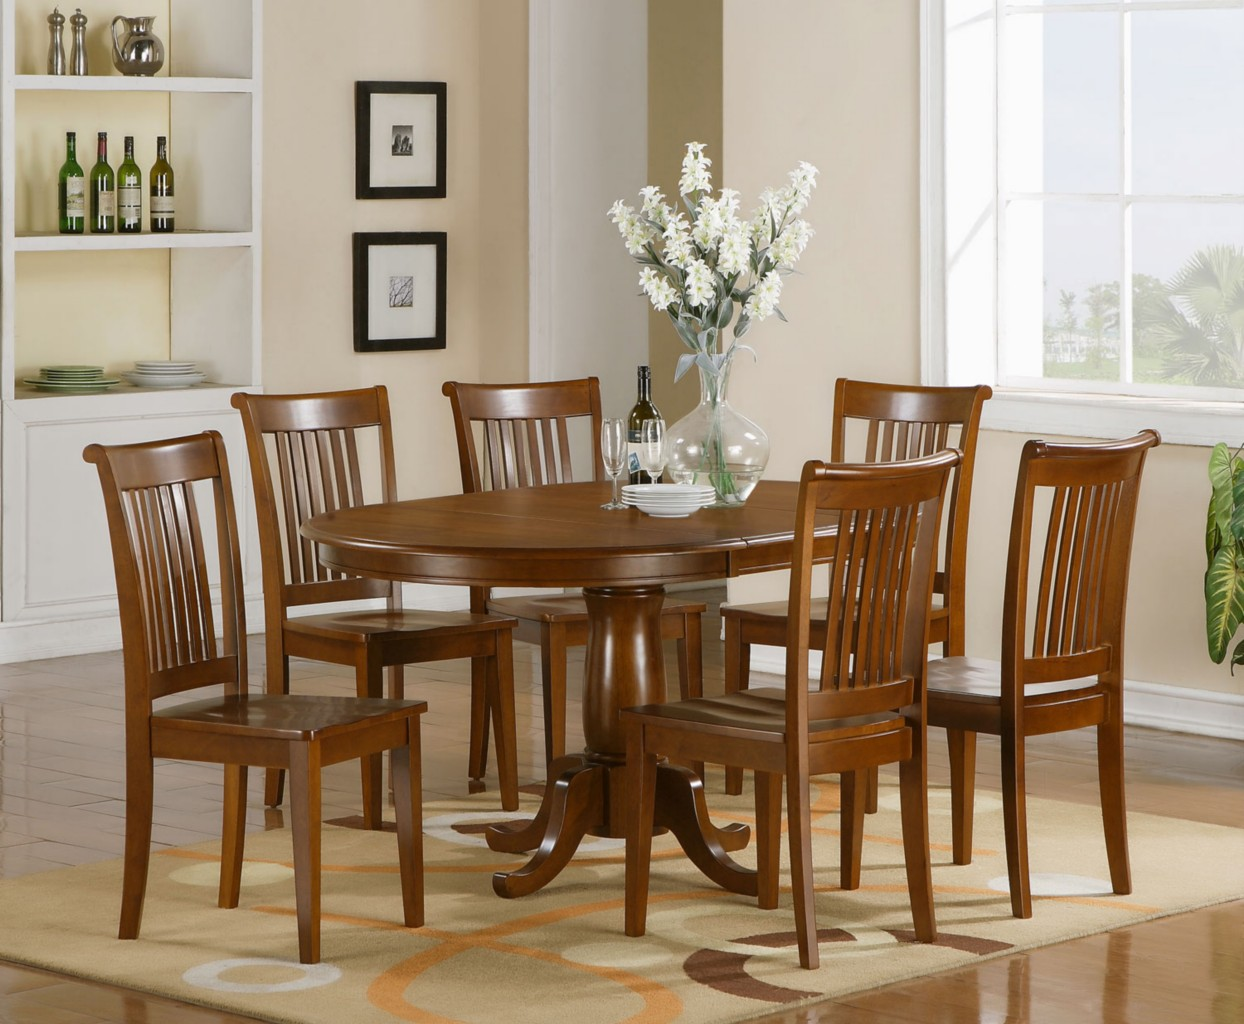 dinning room table and chairs bubble chair stand 7 pc oval dinette dining set 6